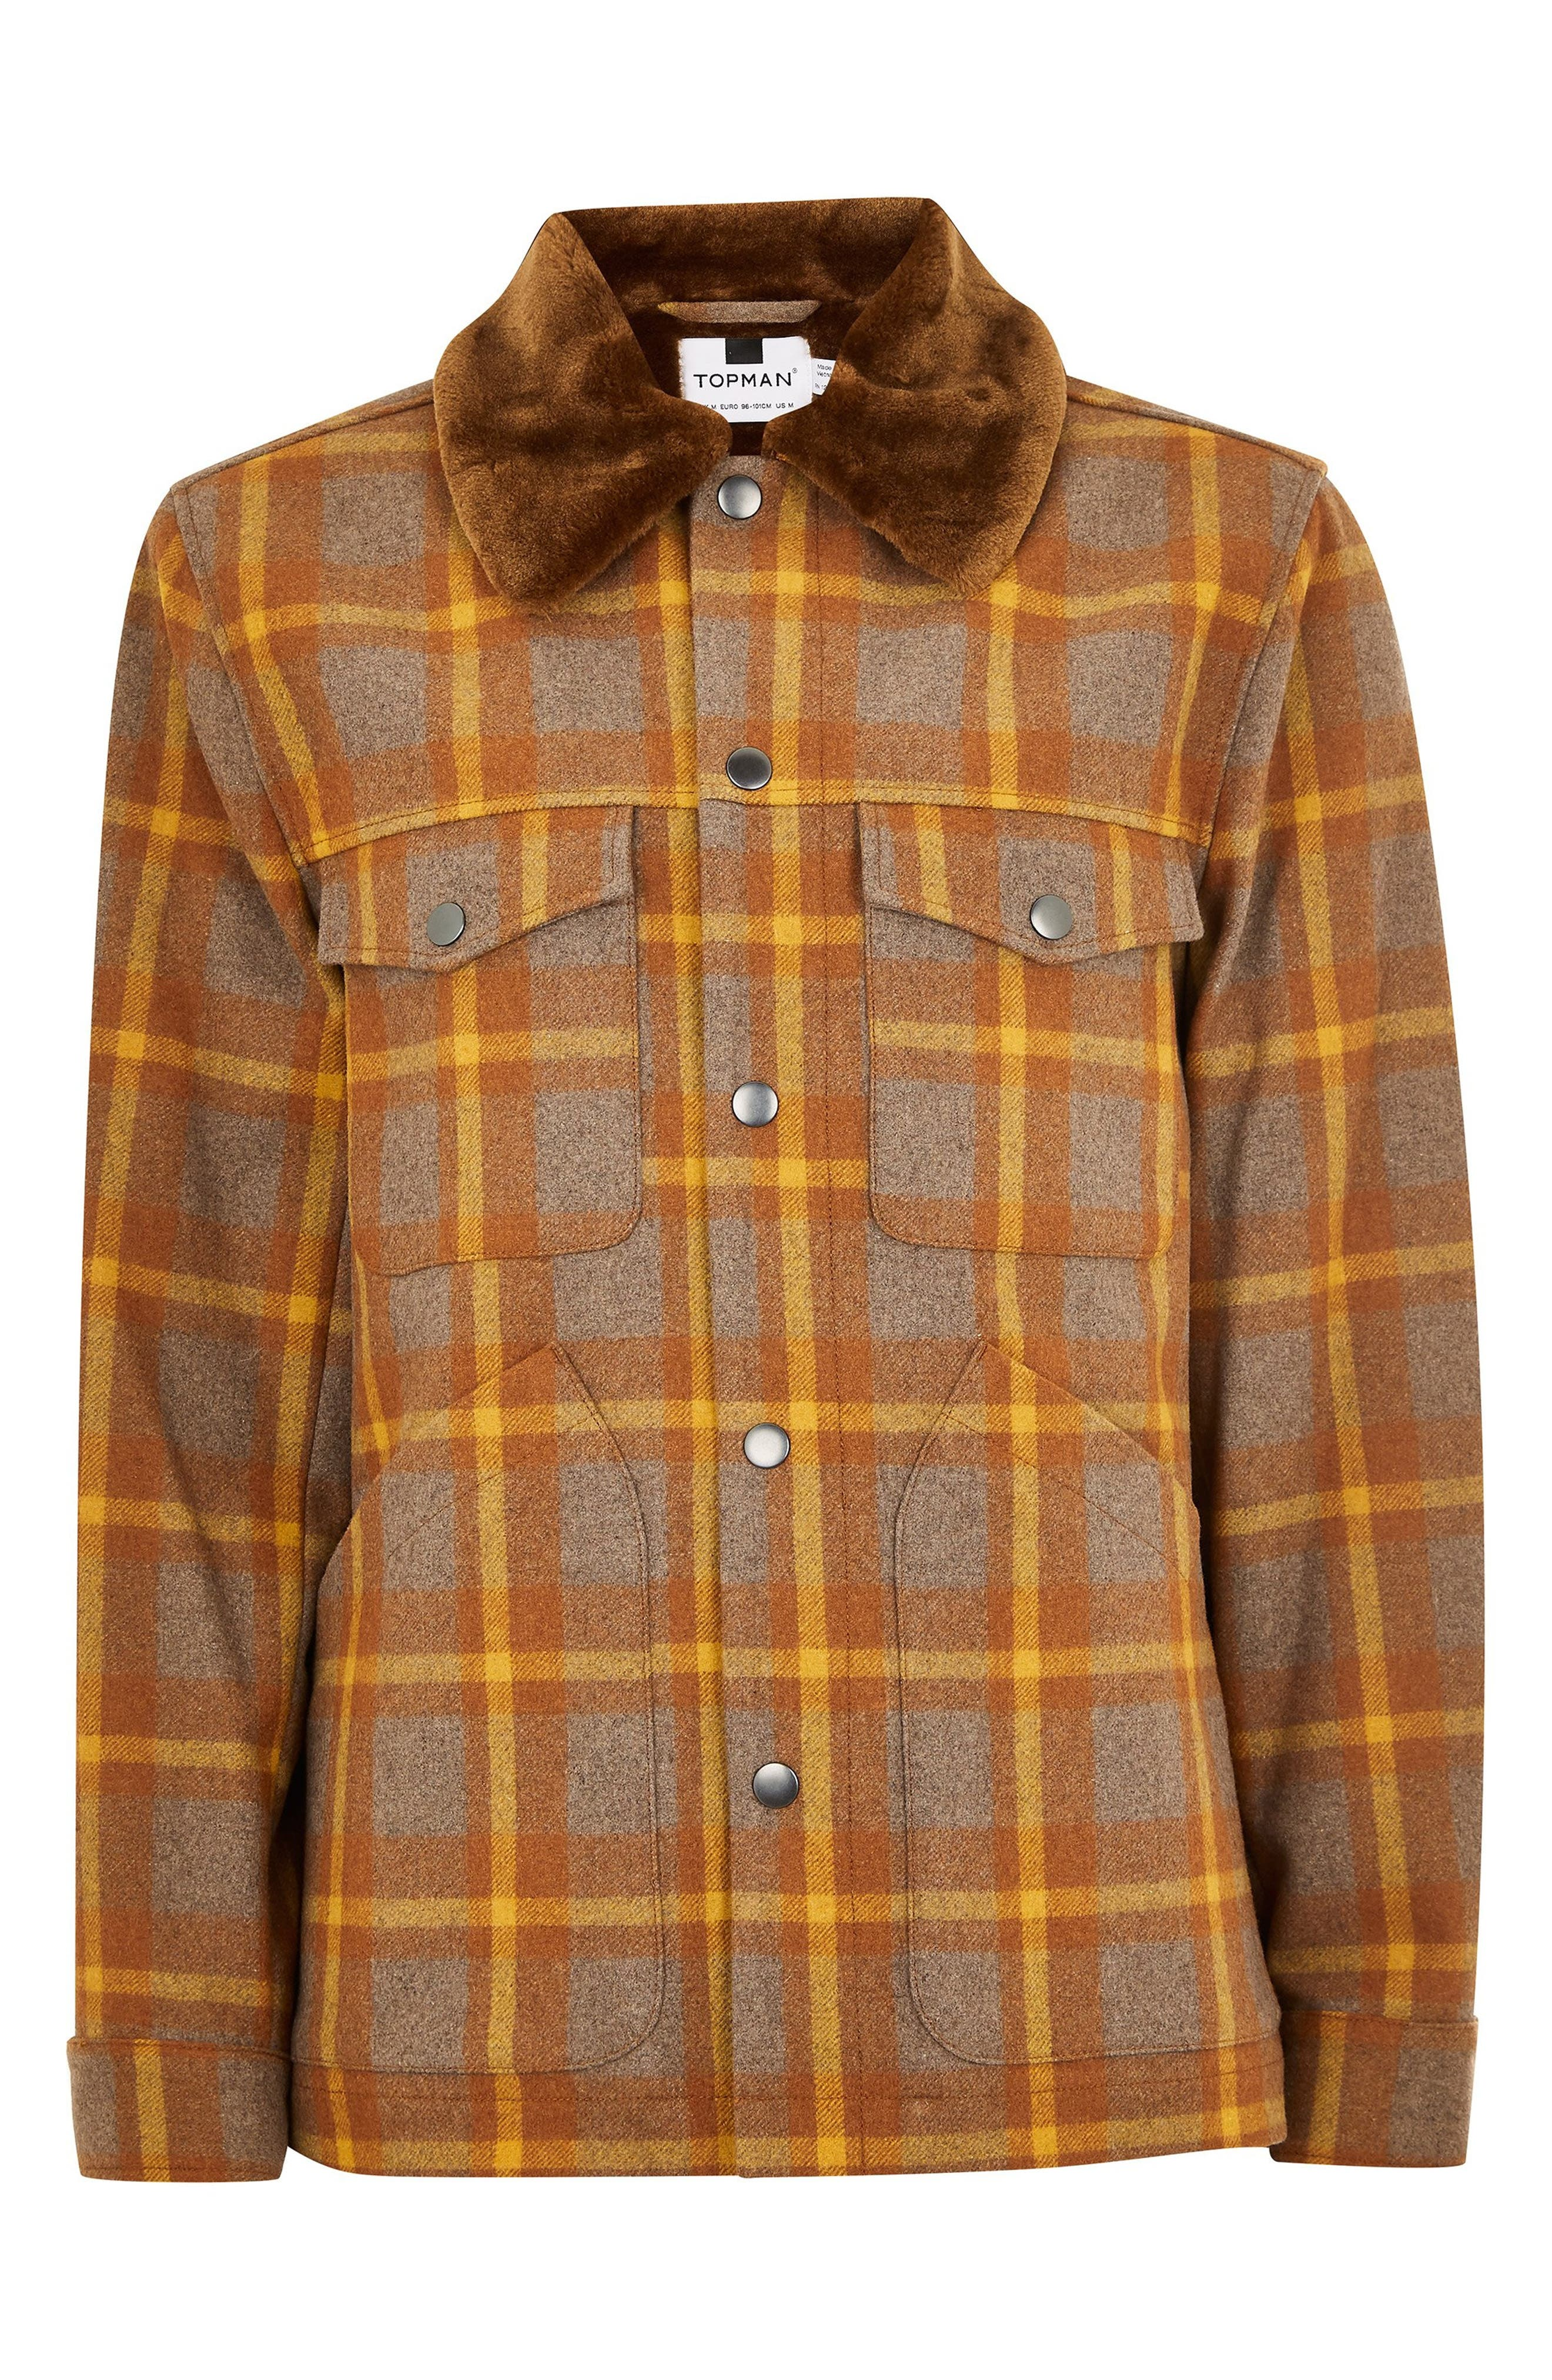 Borg Lined Classic Wool Jacket,                             Alternate thumbnail 4, color,                             BROWN MULTI